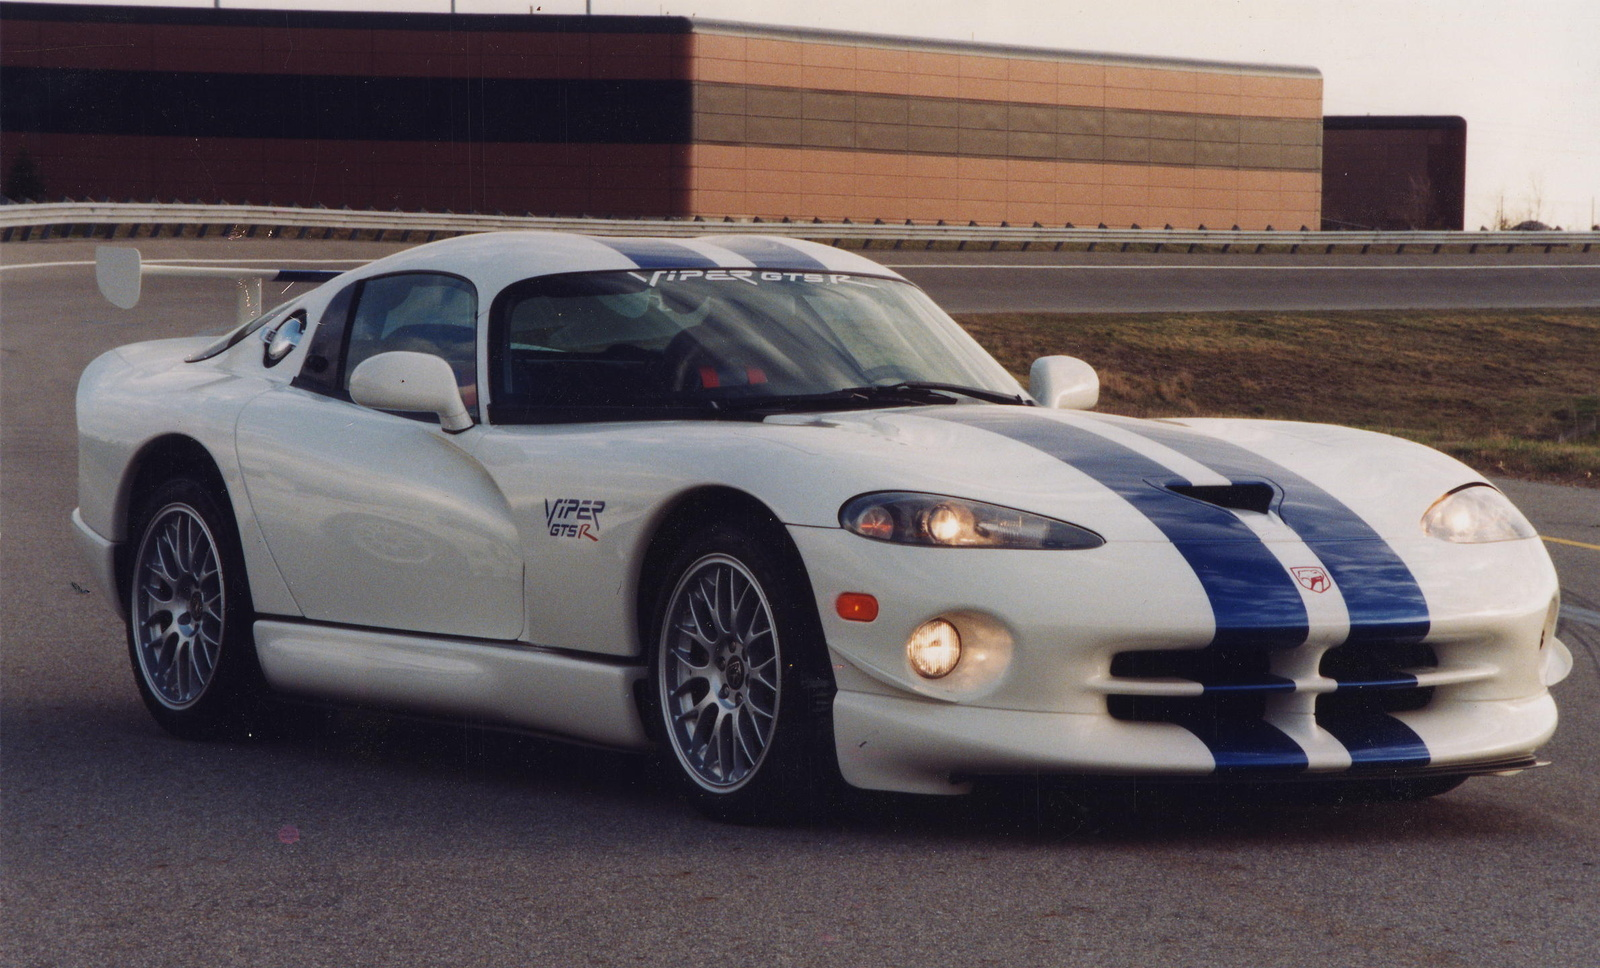 1998 Dodge Viper 2 Dr GTS Coupe picture, exterior